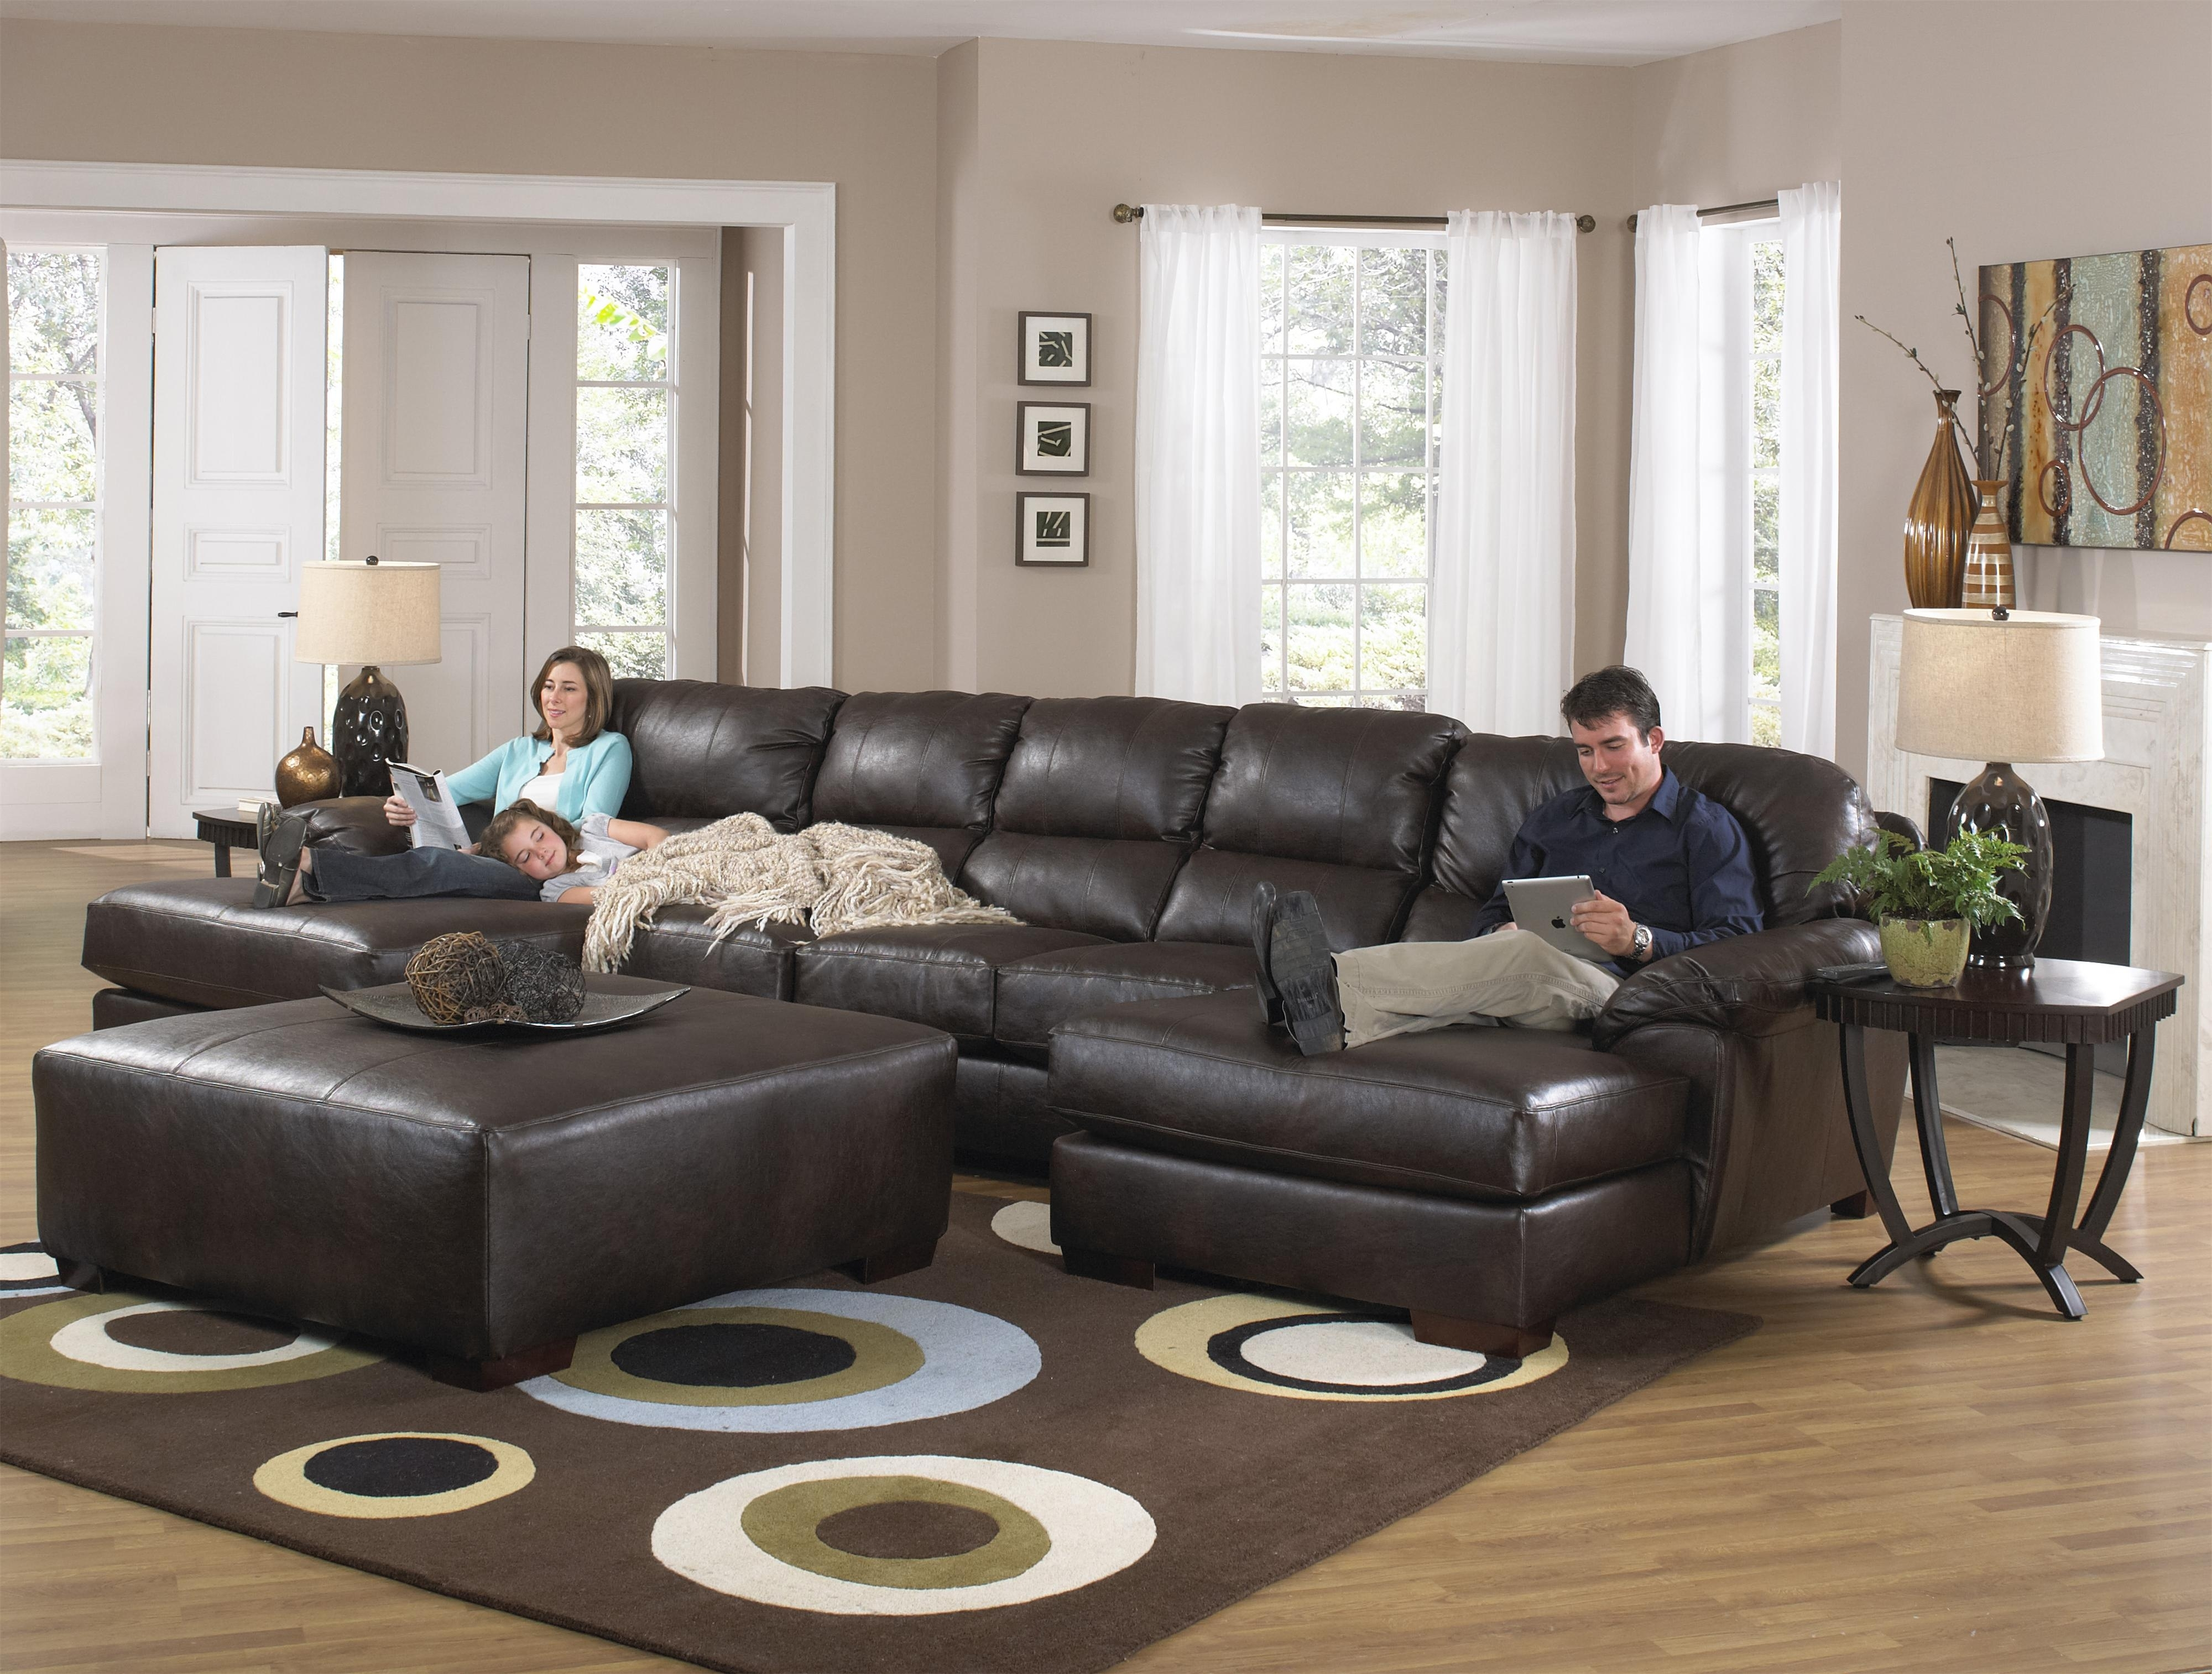 Two Chaise Sectional Sofa With Five Total Seatsjackson Furniture Regarding Sectional Sofas With 2 Chaises (View 2 of 10)